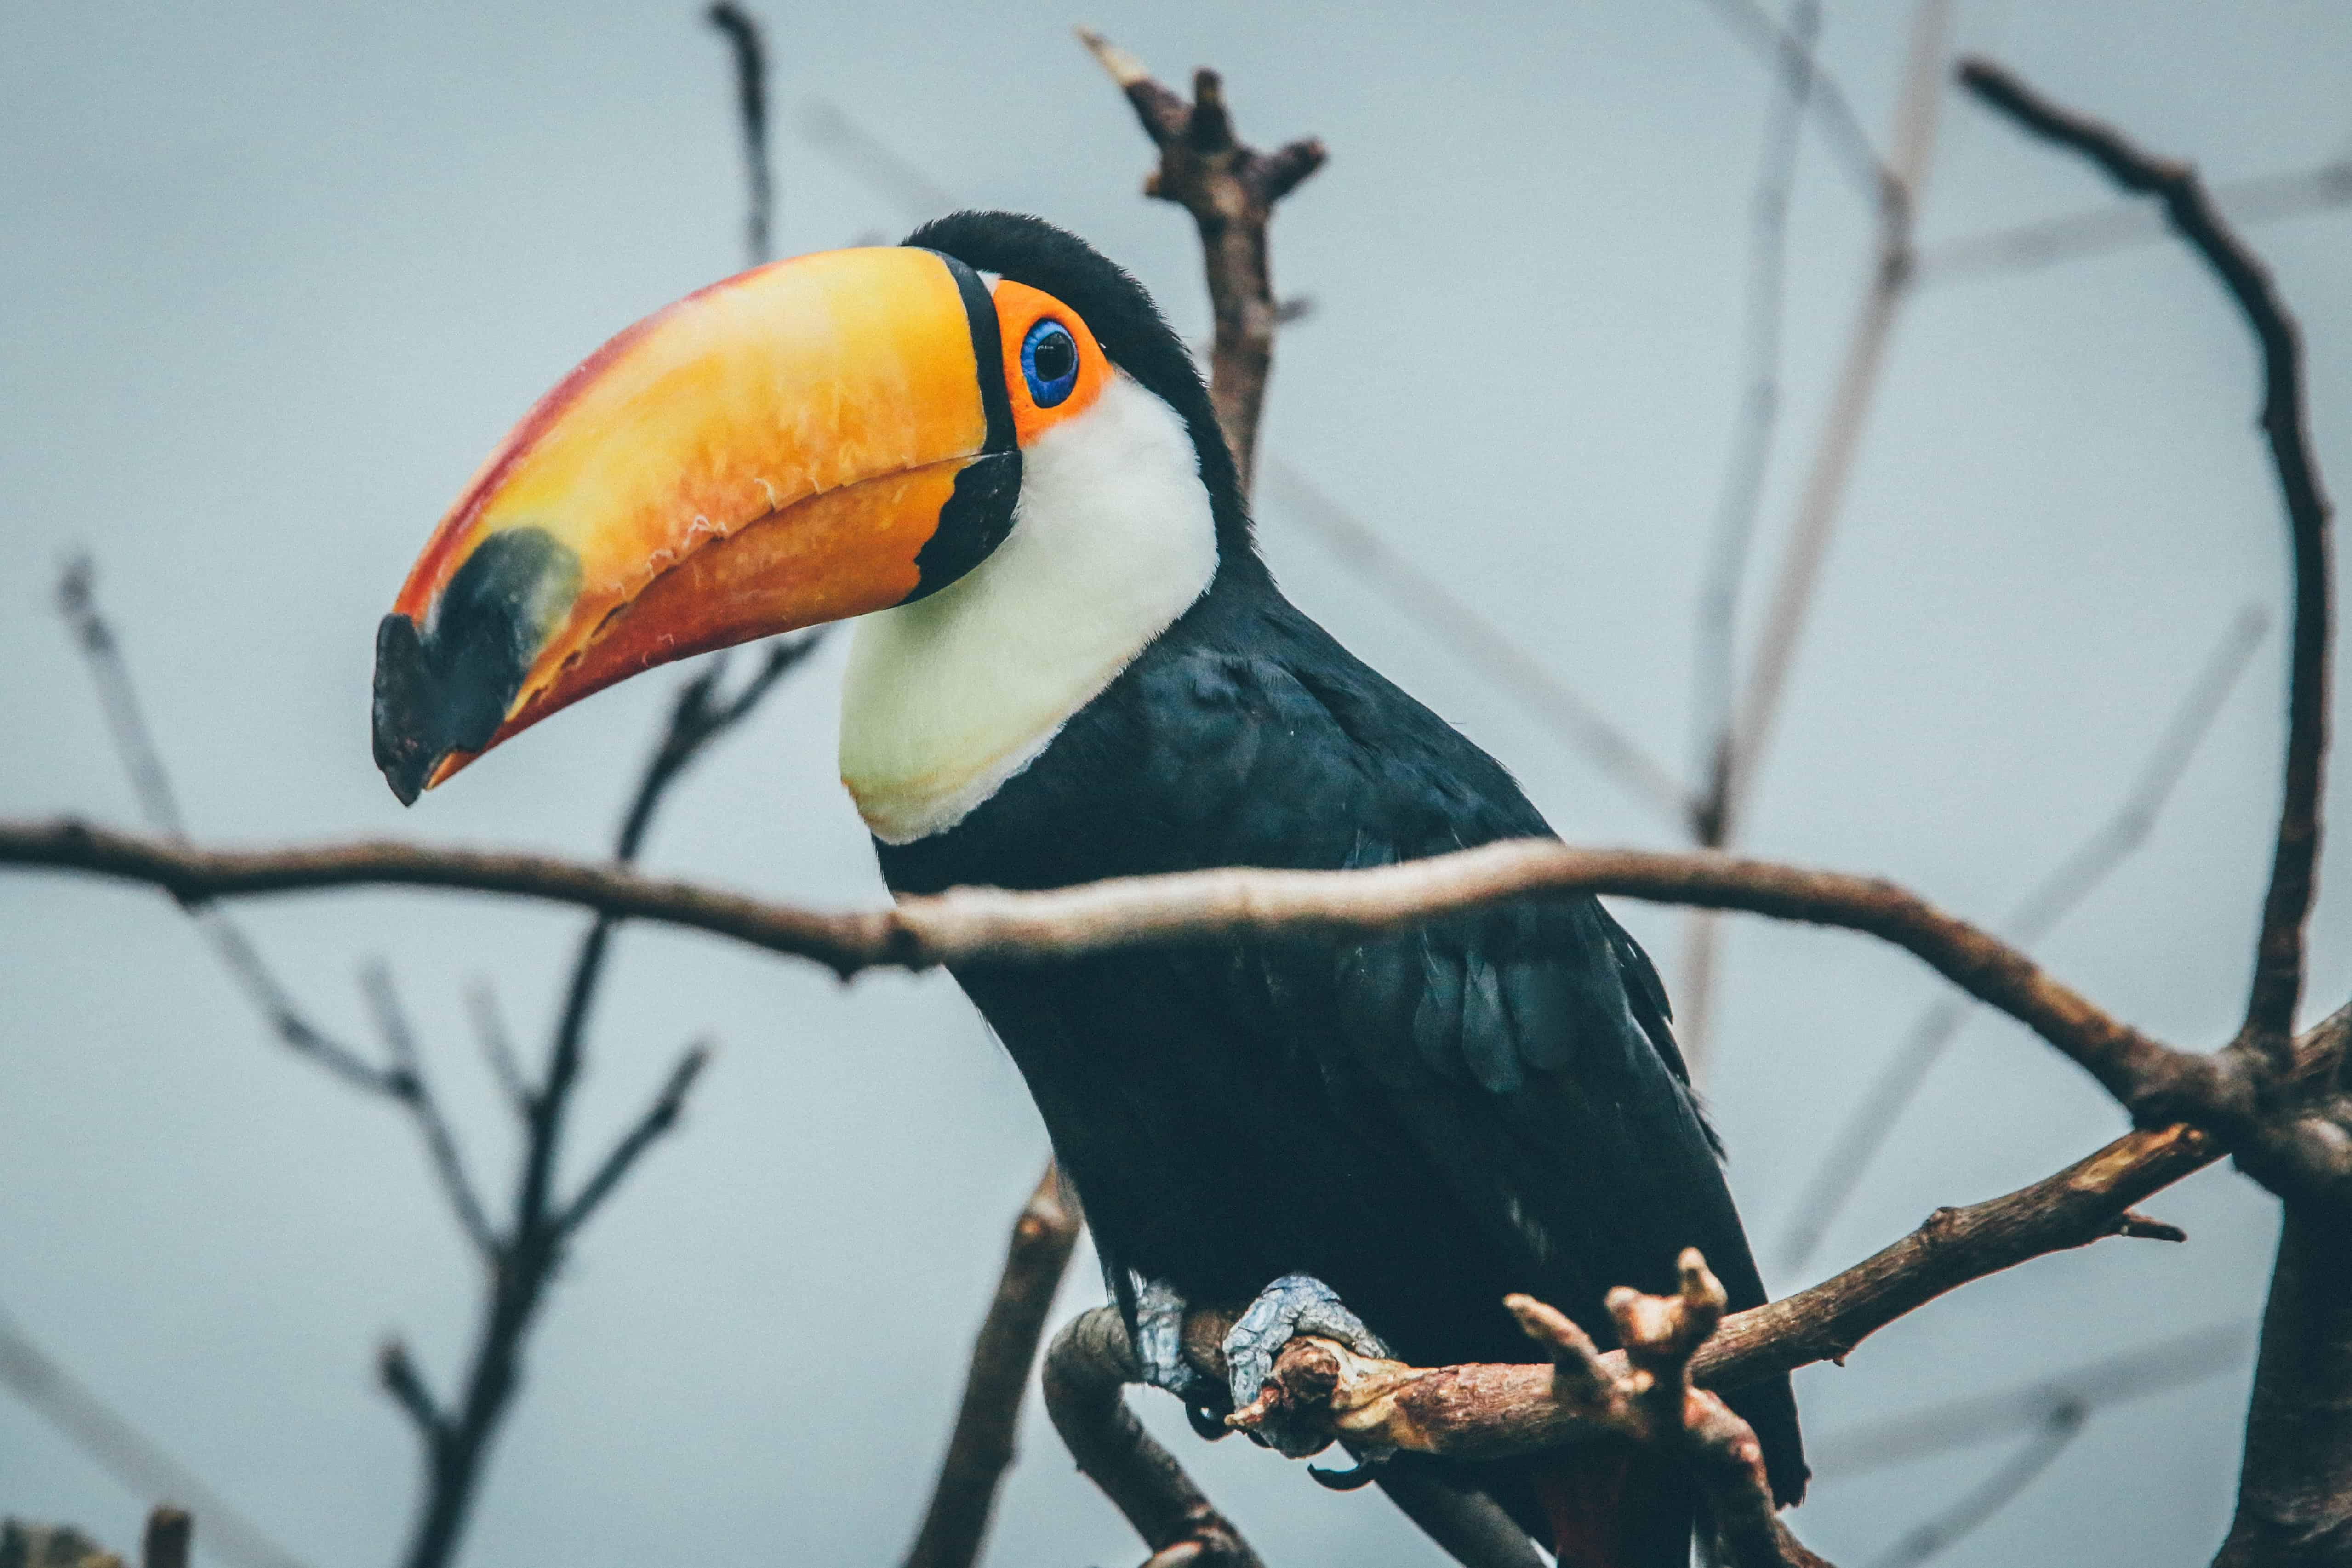 Toucan on a branch, Toucan facts